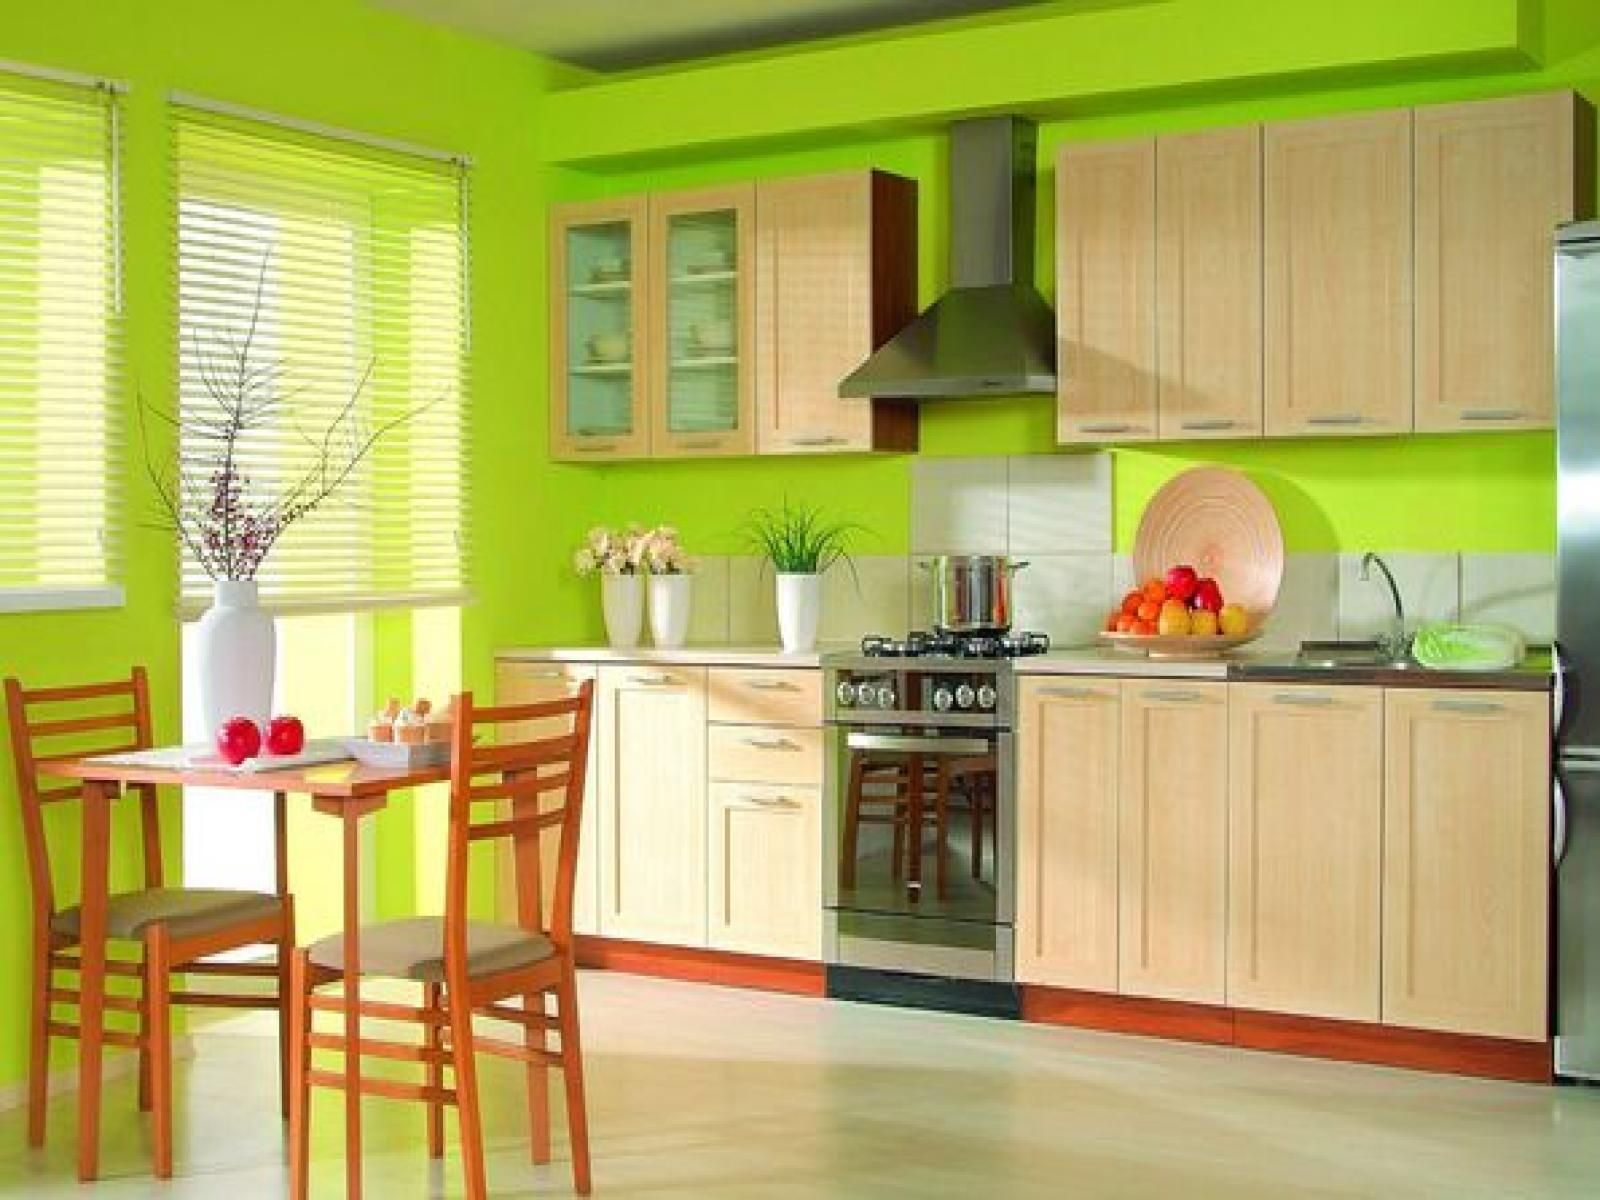 Green and Yellow Kitchen Decor With Tropical Style and Wooden Table ...